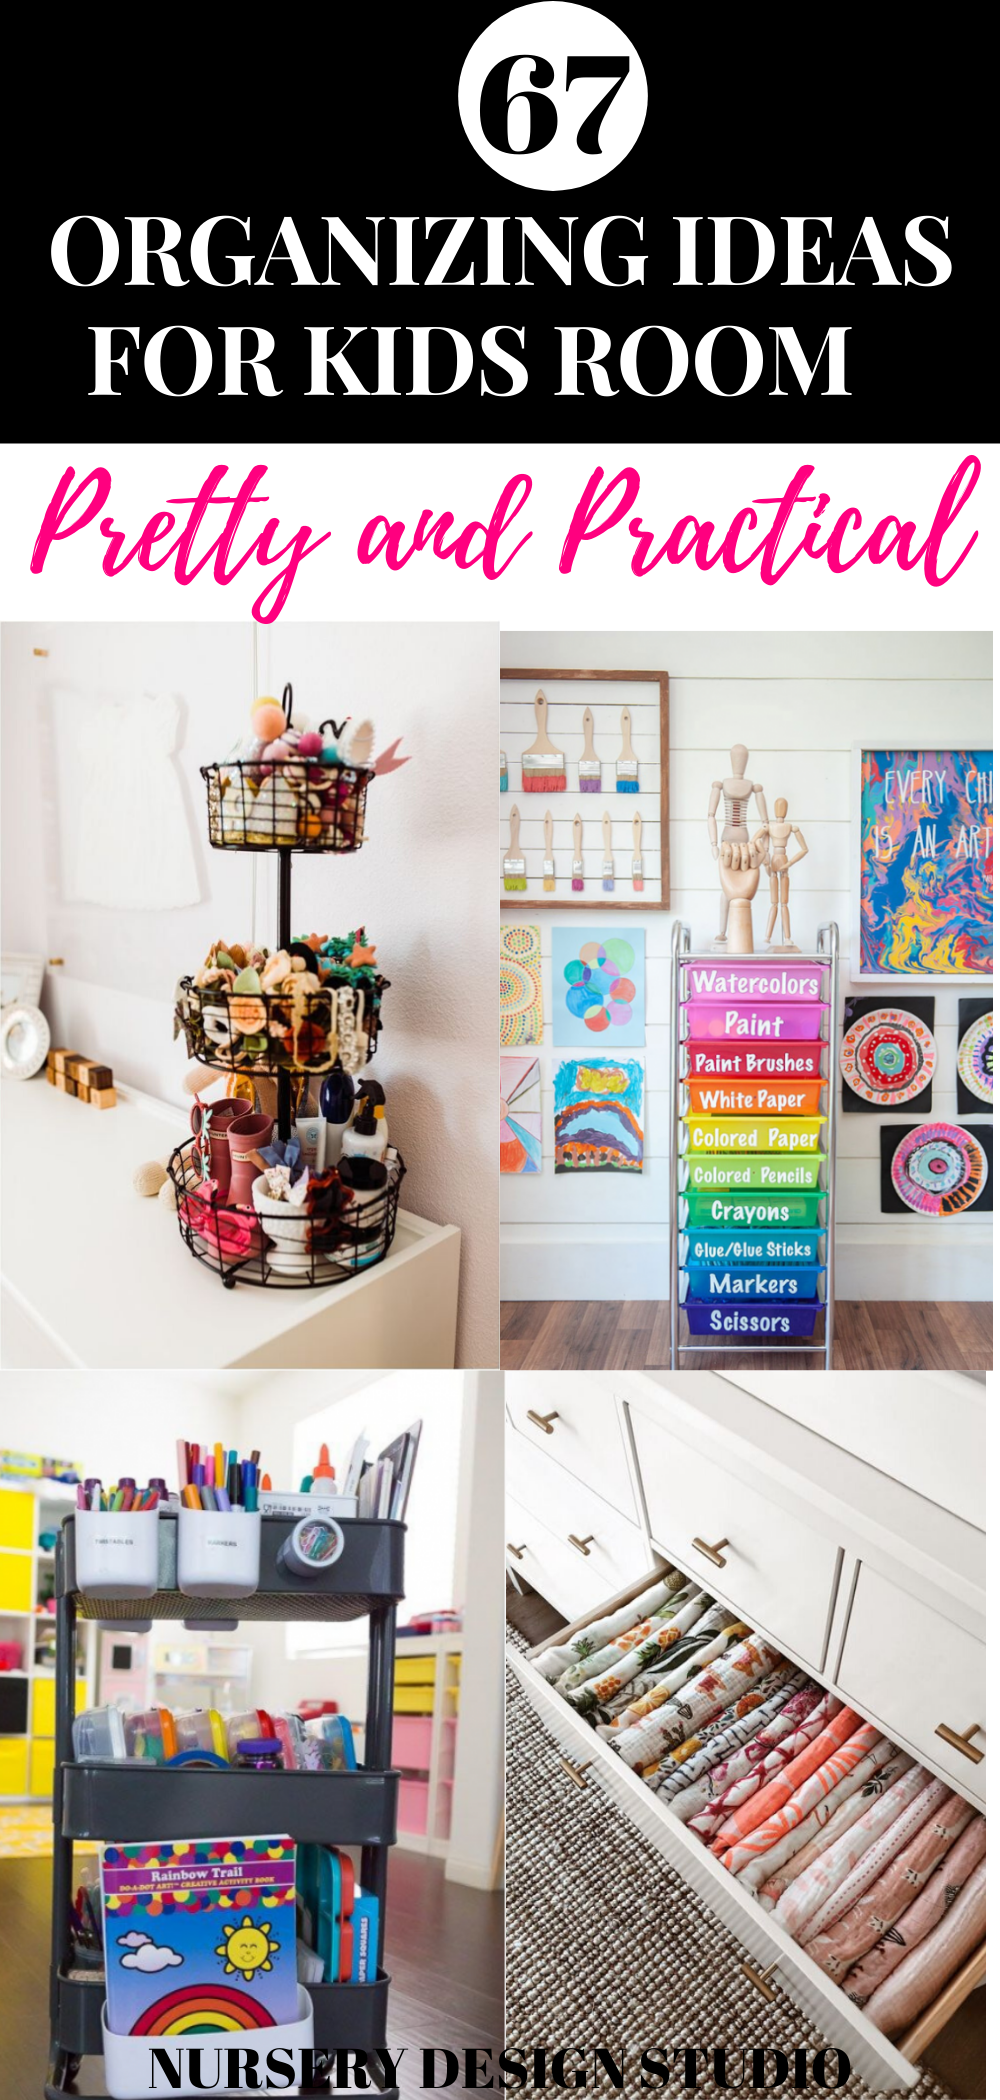 67 ORGANIZING IDEAS FOR KIDS ROOMS